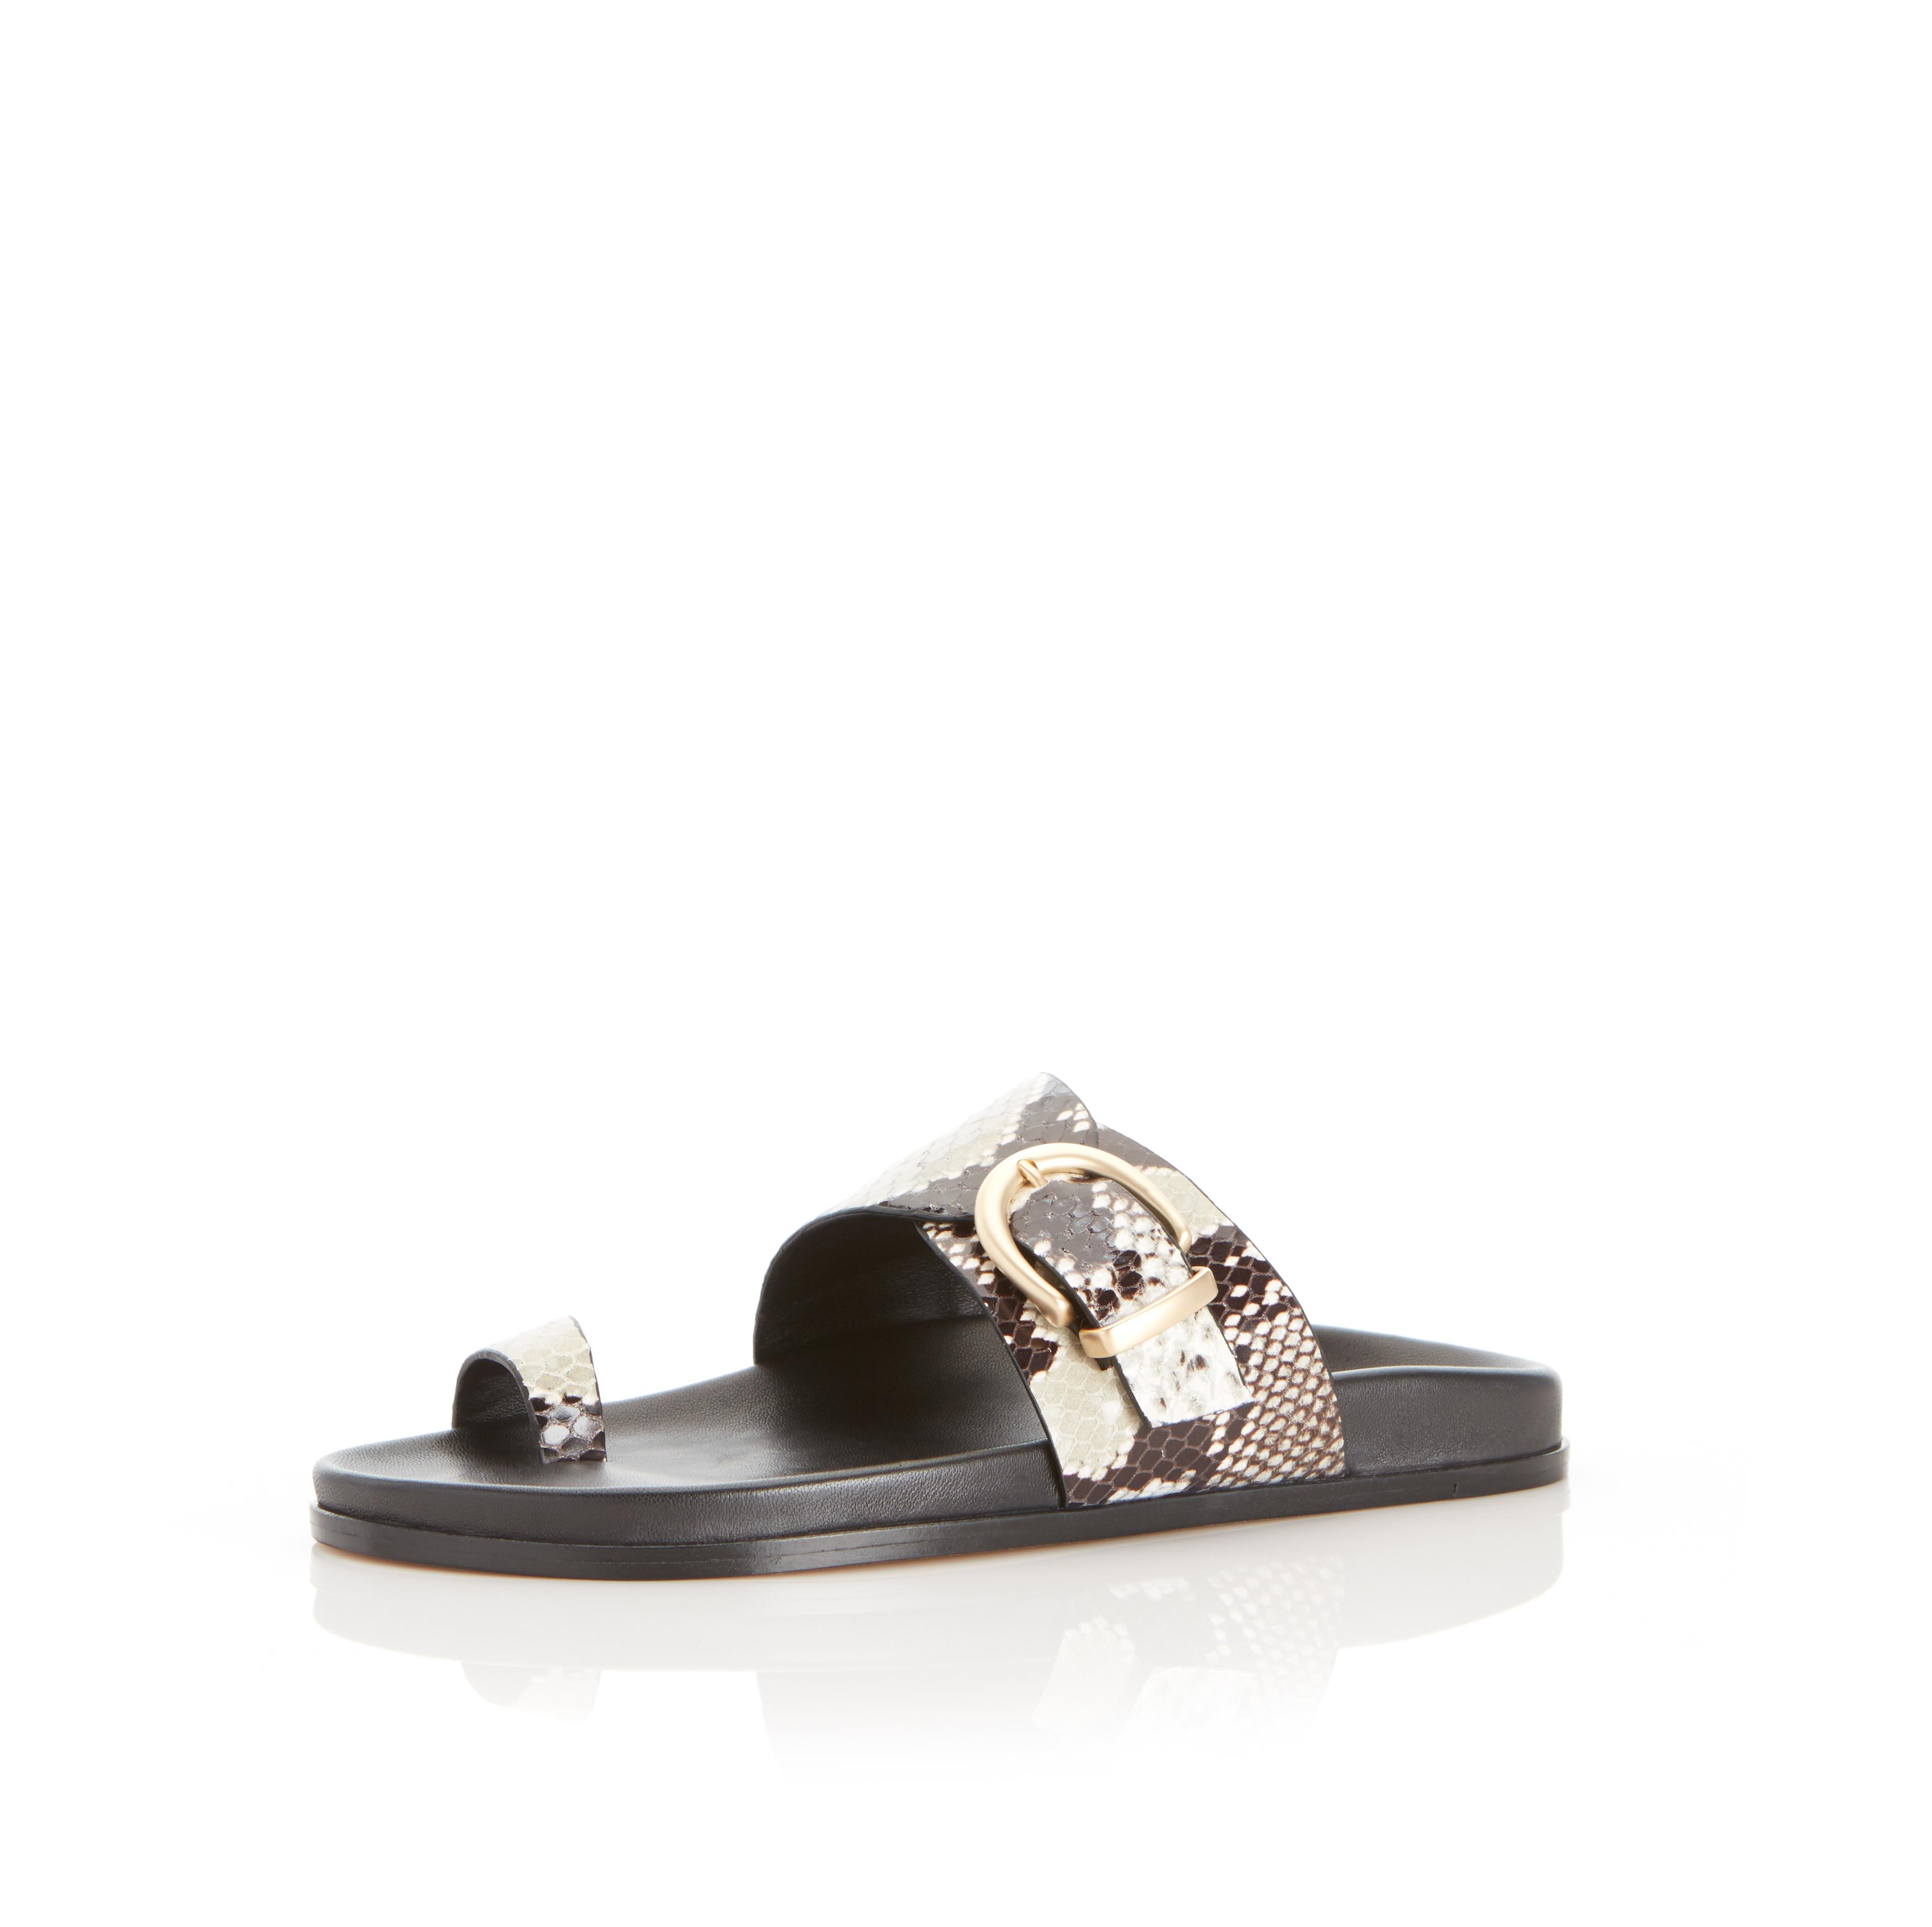 Cyrus | Leather Slide Sandal with Contoured Footbed 1